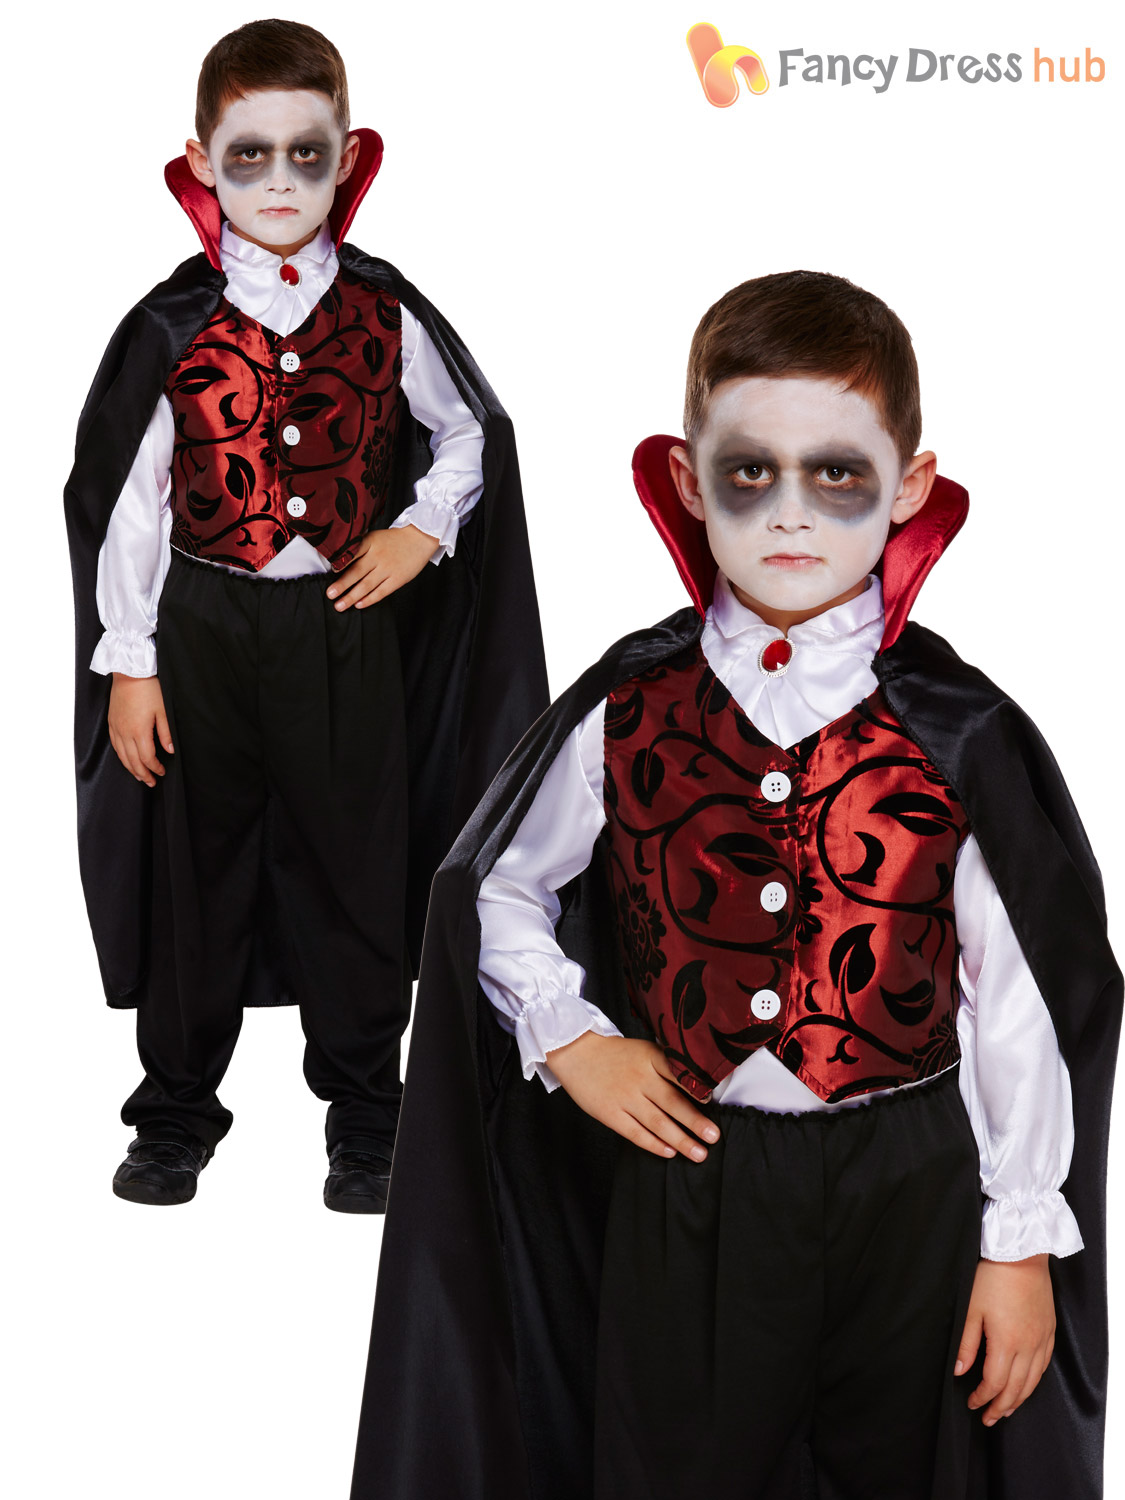 Halloween Vampire Costume Kids.Childrens Halloween Vampire Costumes Childrens Deluxe V Ire